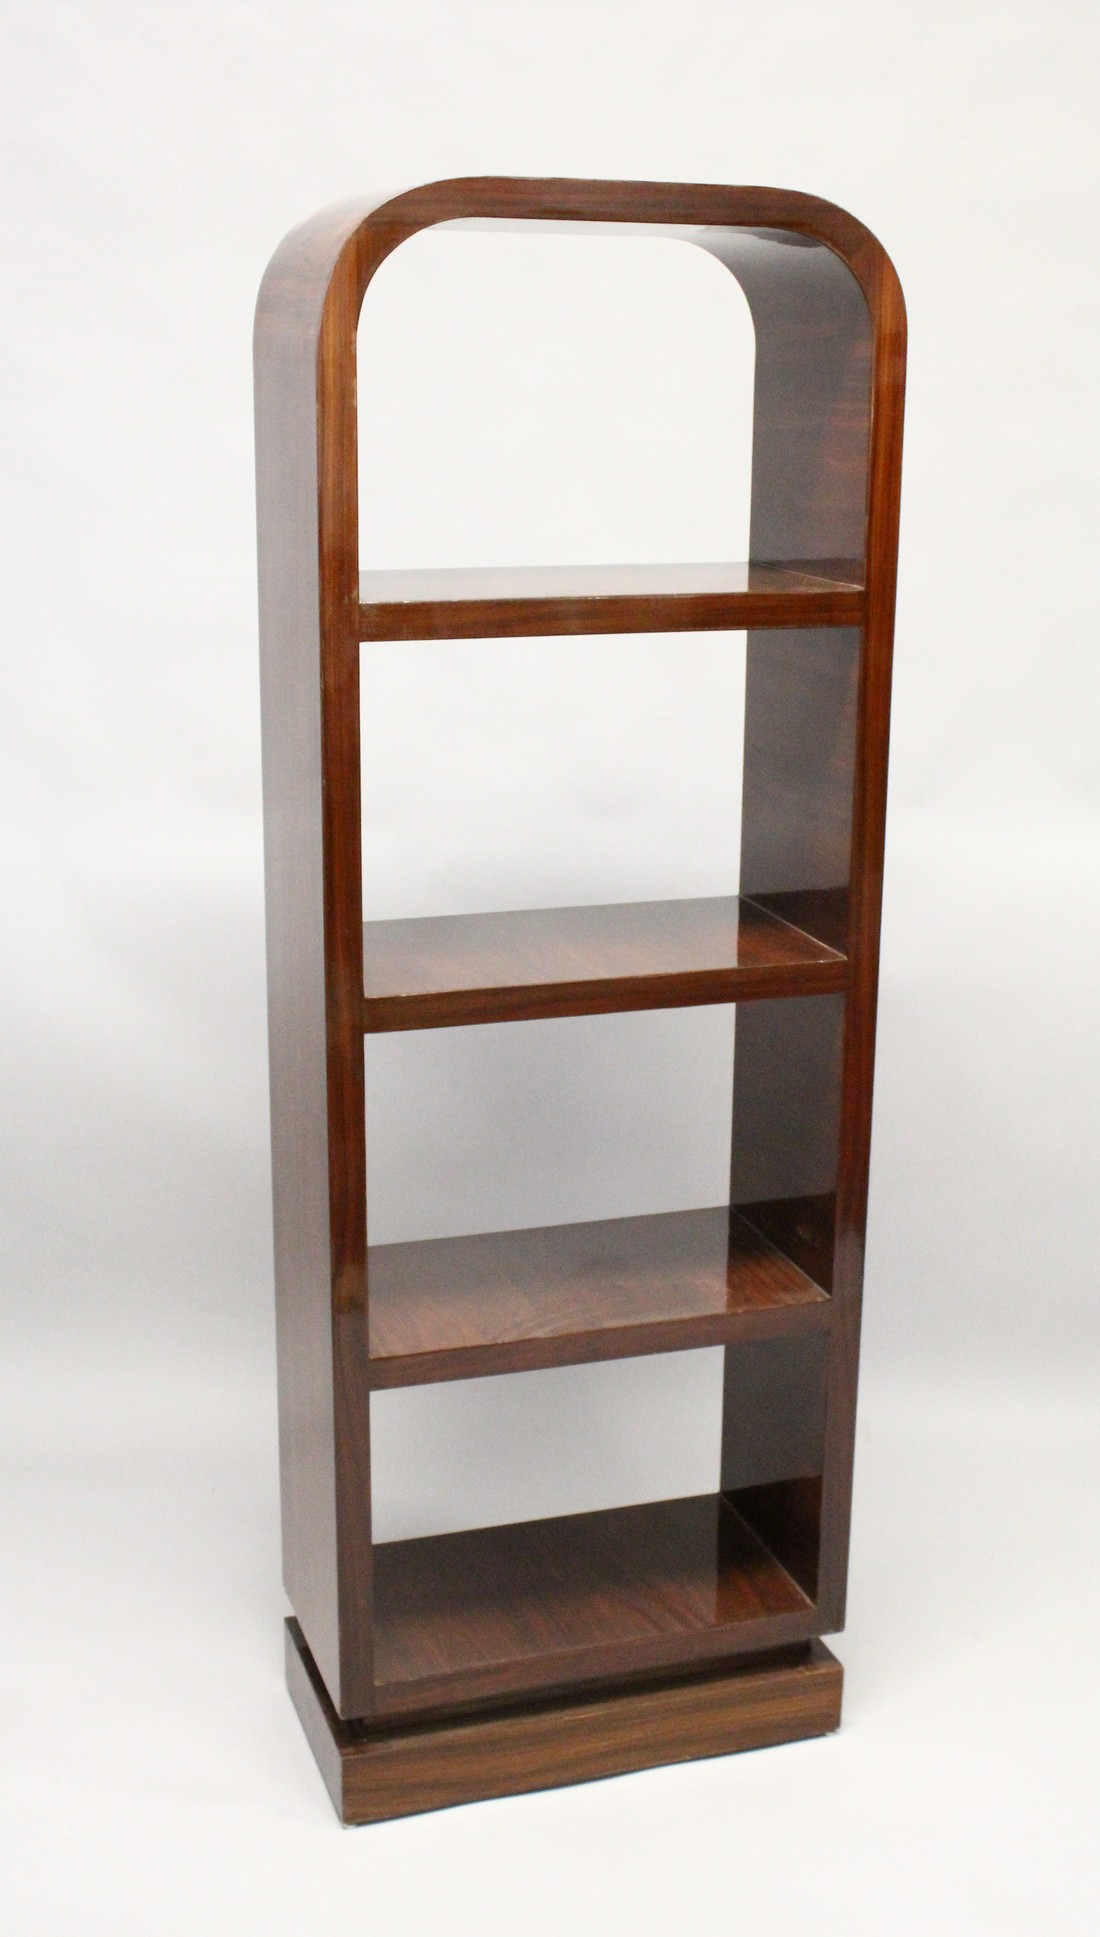 AN ART DECO STYLE ROSEWOOD BOOKSHELF with a rounded top and four shelves. 5ft 8ins high x 1ft 11.